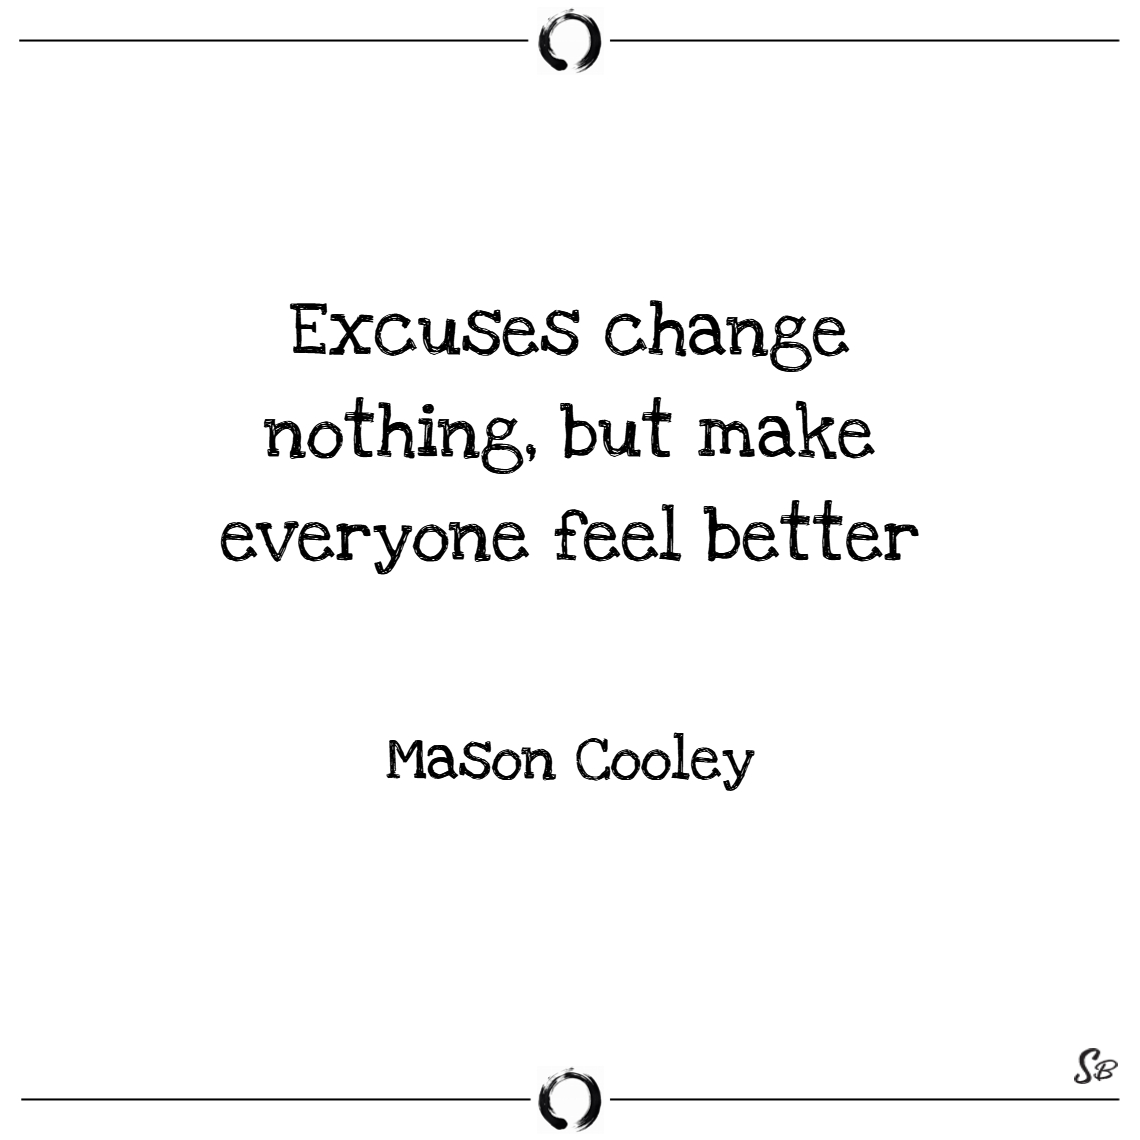 Excuses change nothing, but make everyone feel bet